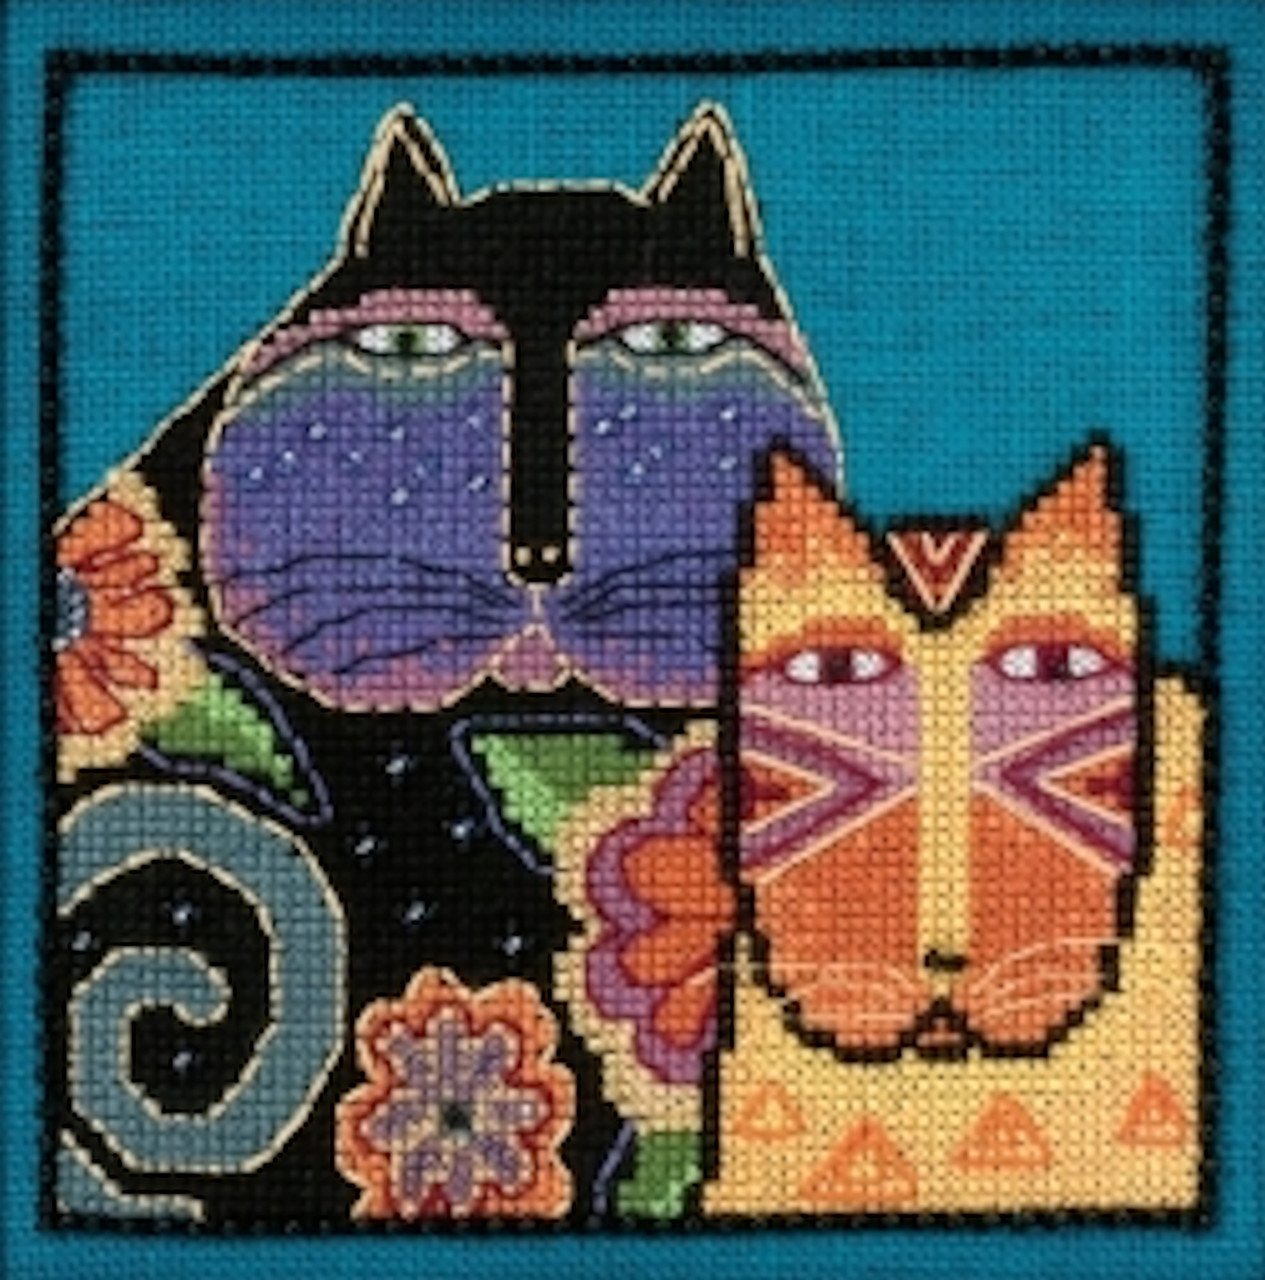 Mill Hill / Laurel Burch - Feline Friends (AIDA)